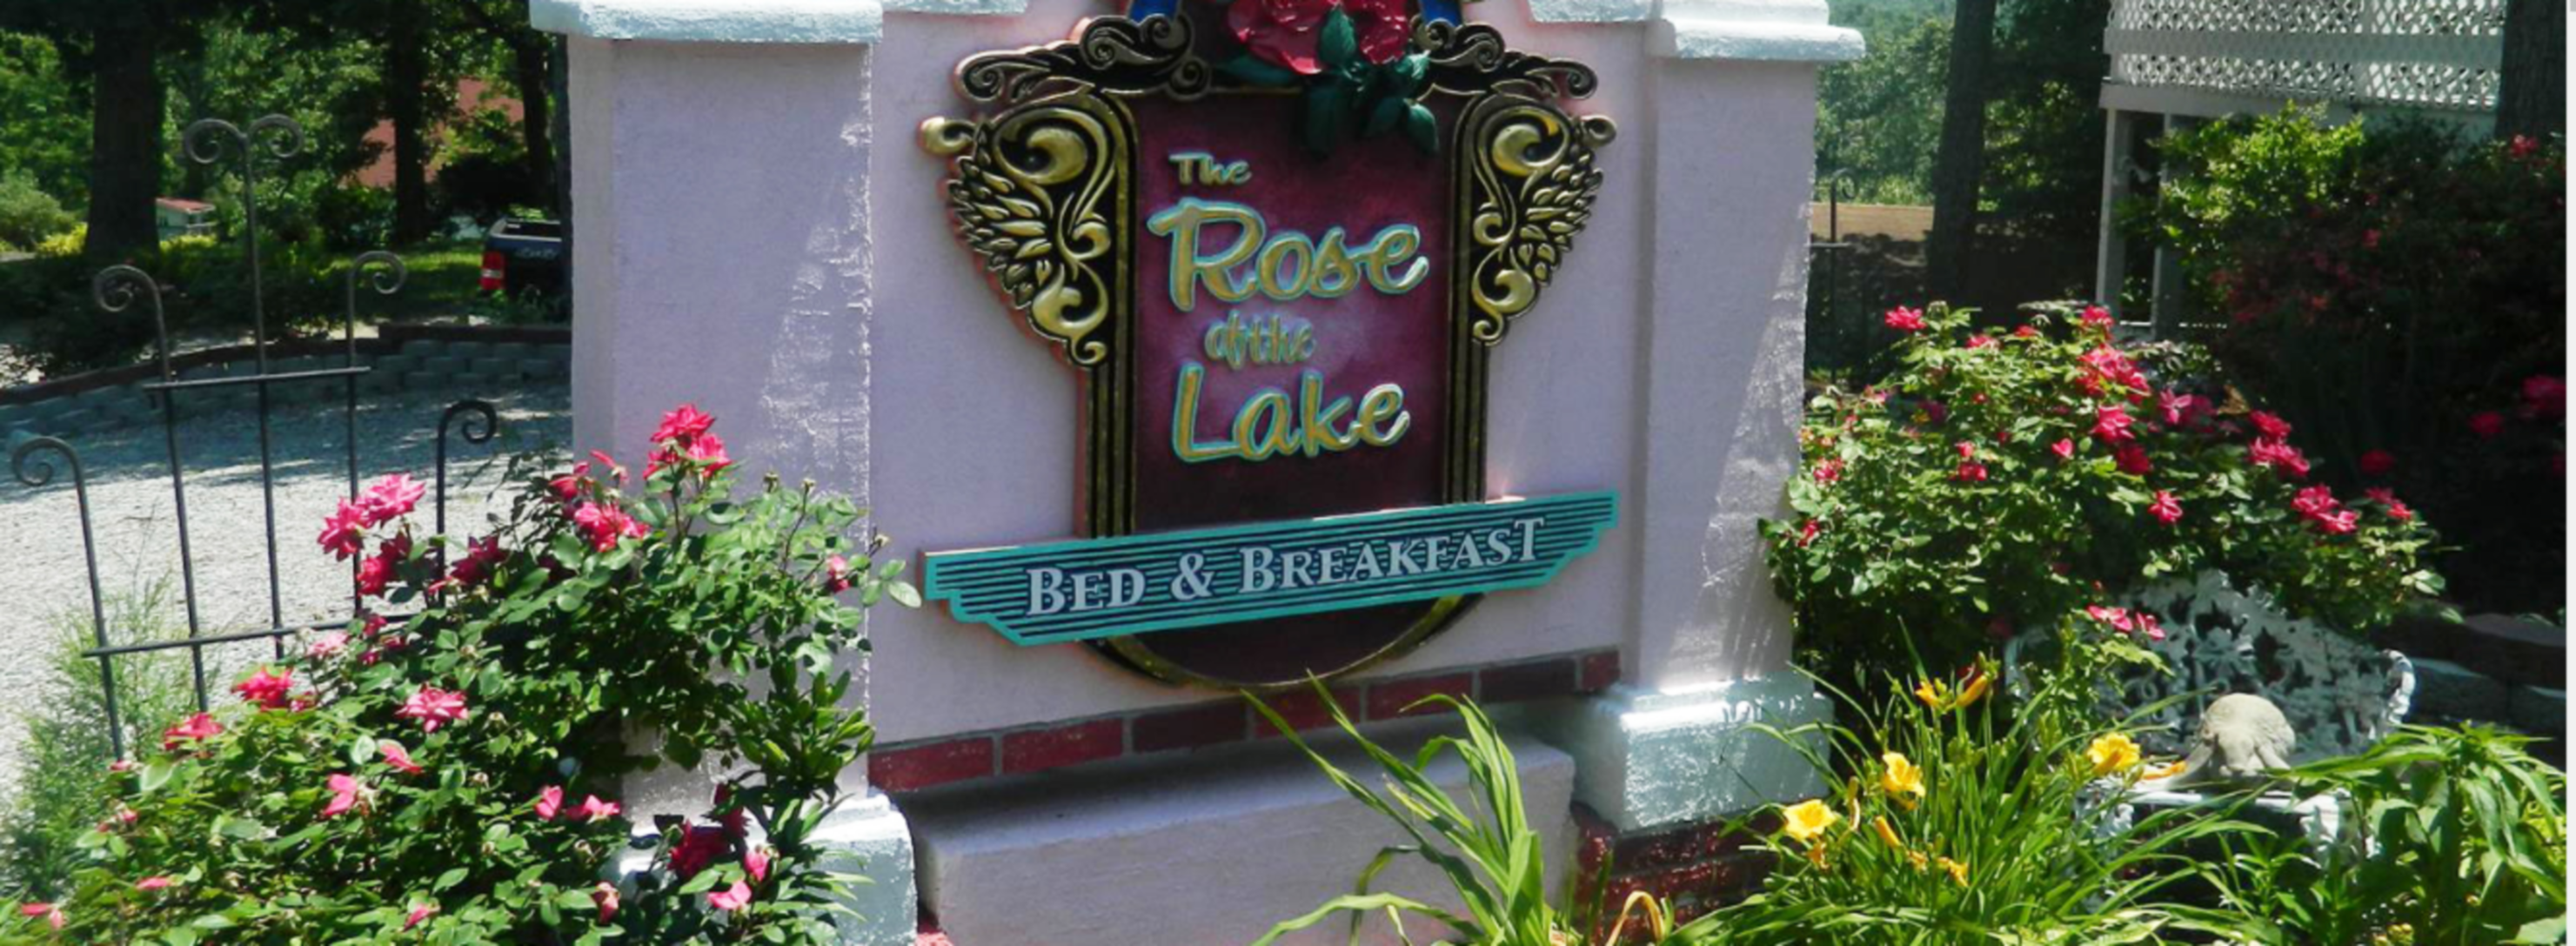 A close up of a flower garden in front of a building at  Rose of the Lake.